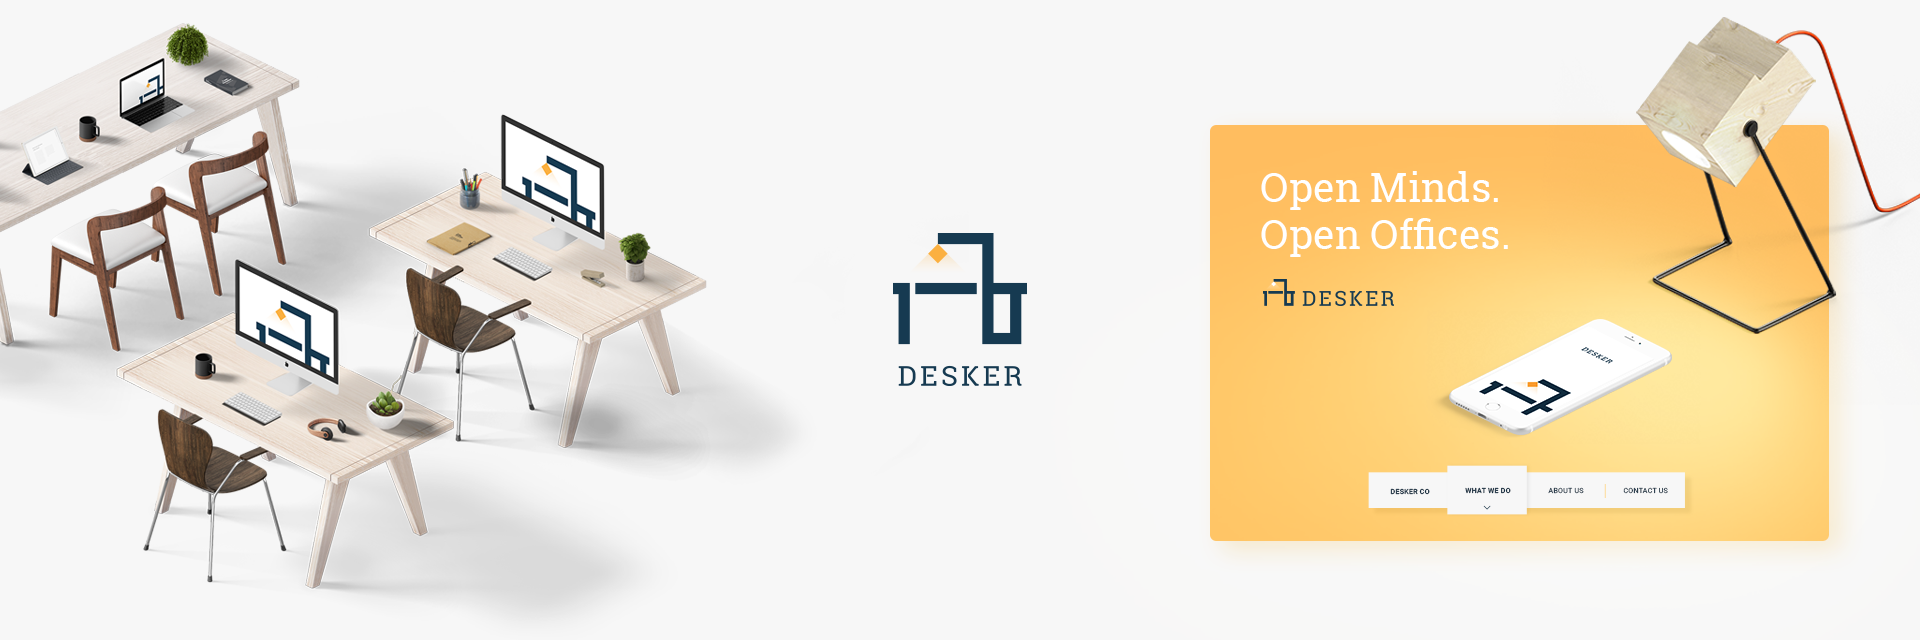 Branding and Digital design, web, ui/ux for a cloud based office service